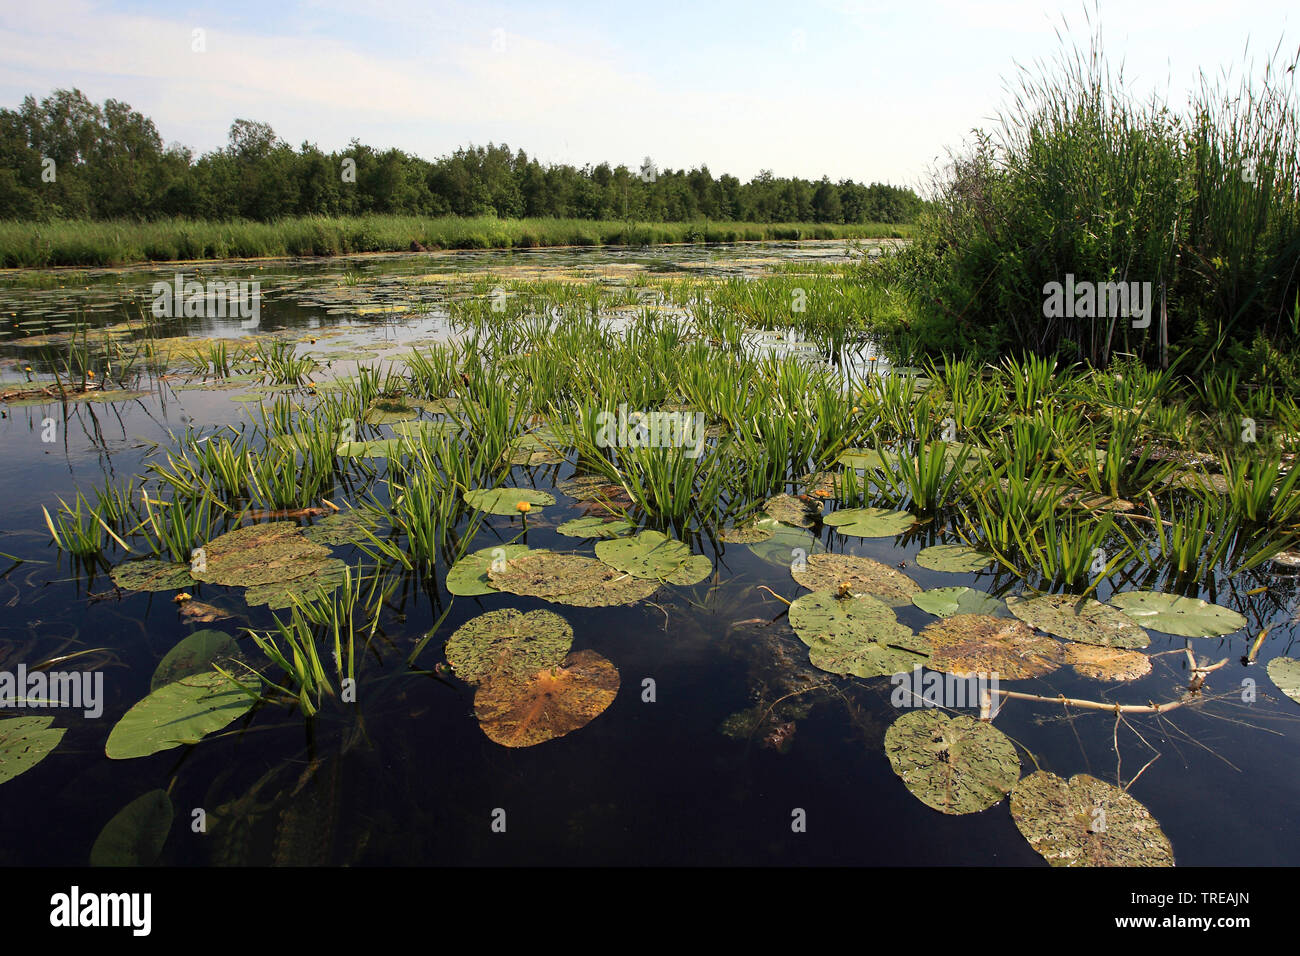 crab's-claw, water-soldier (Stratiotes aloides), on water with waterlilies, Netherlands, Overijssel, Weerribben-Wieden National Park Stock Photo